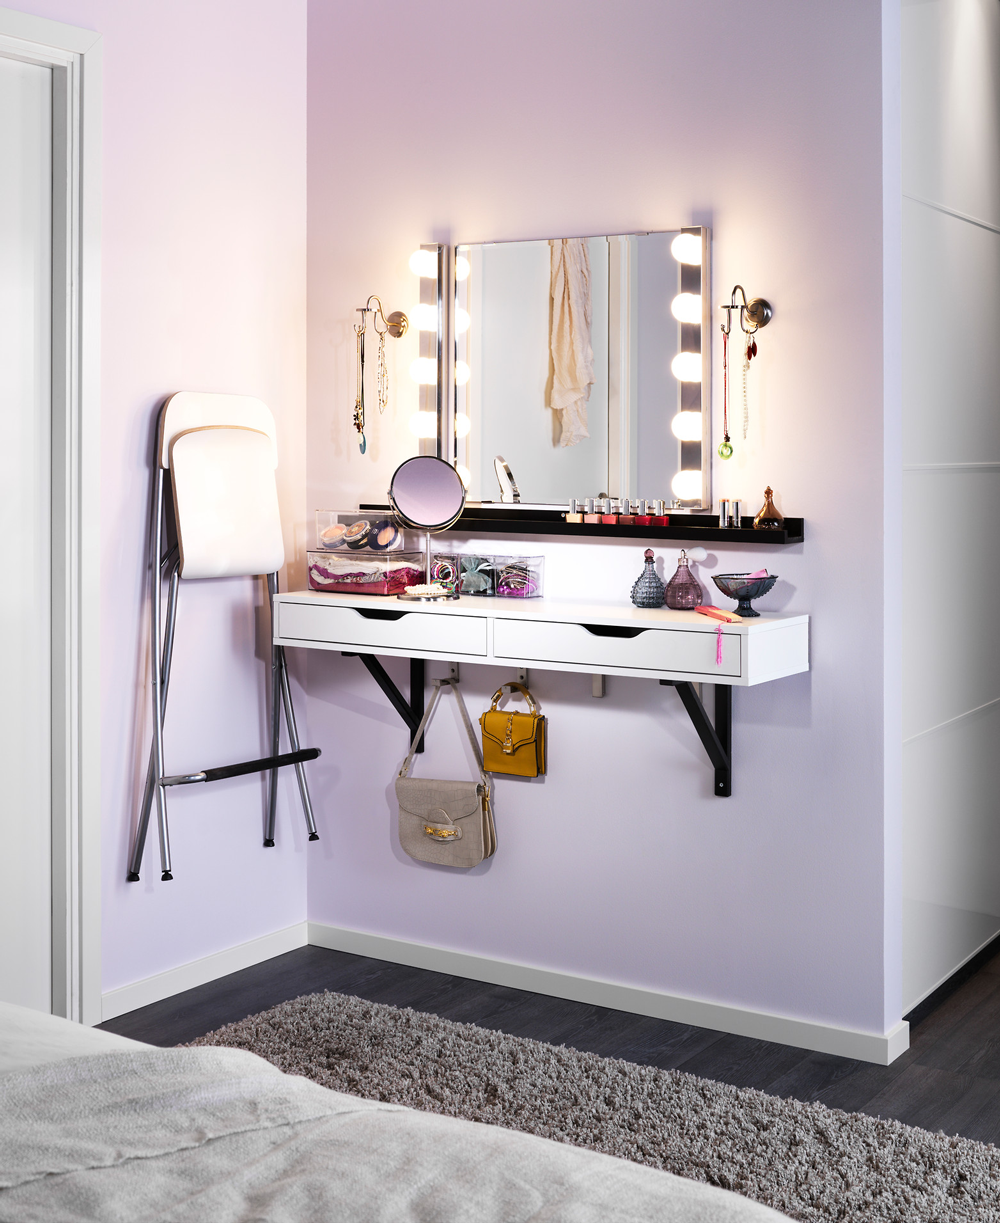 Making Space For A Vanity In A Small Bedroom. The EKBY ALEX Wall Shelf  Creates A Dressing Table / Vanity Without Taking Up Valuable Floor Space.